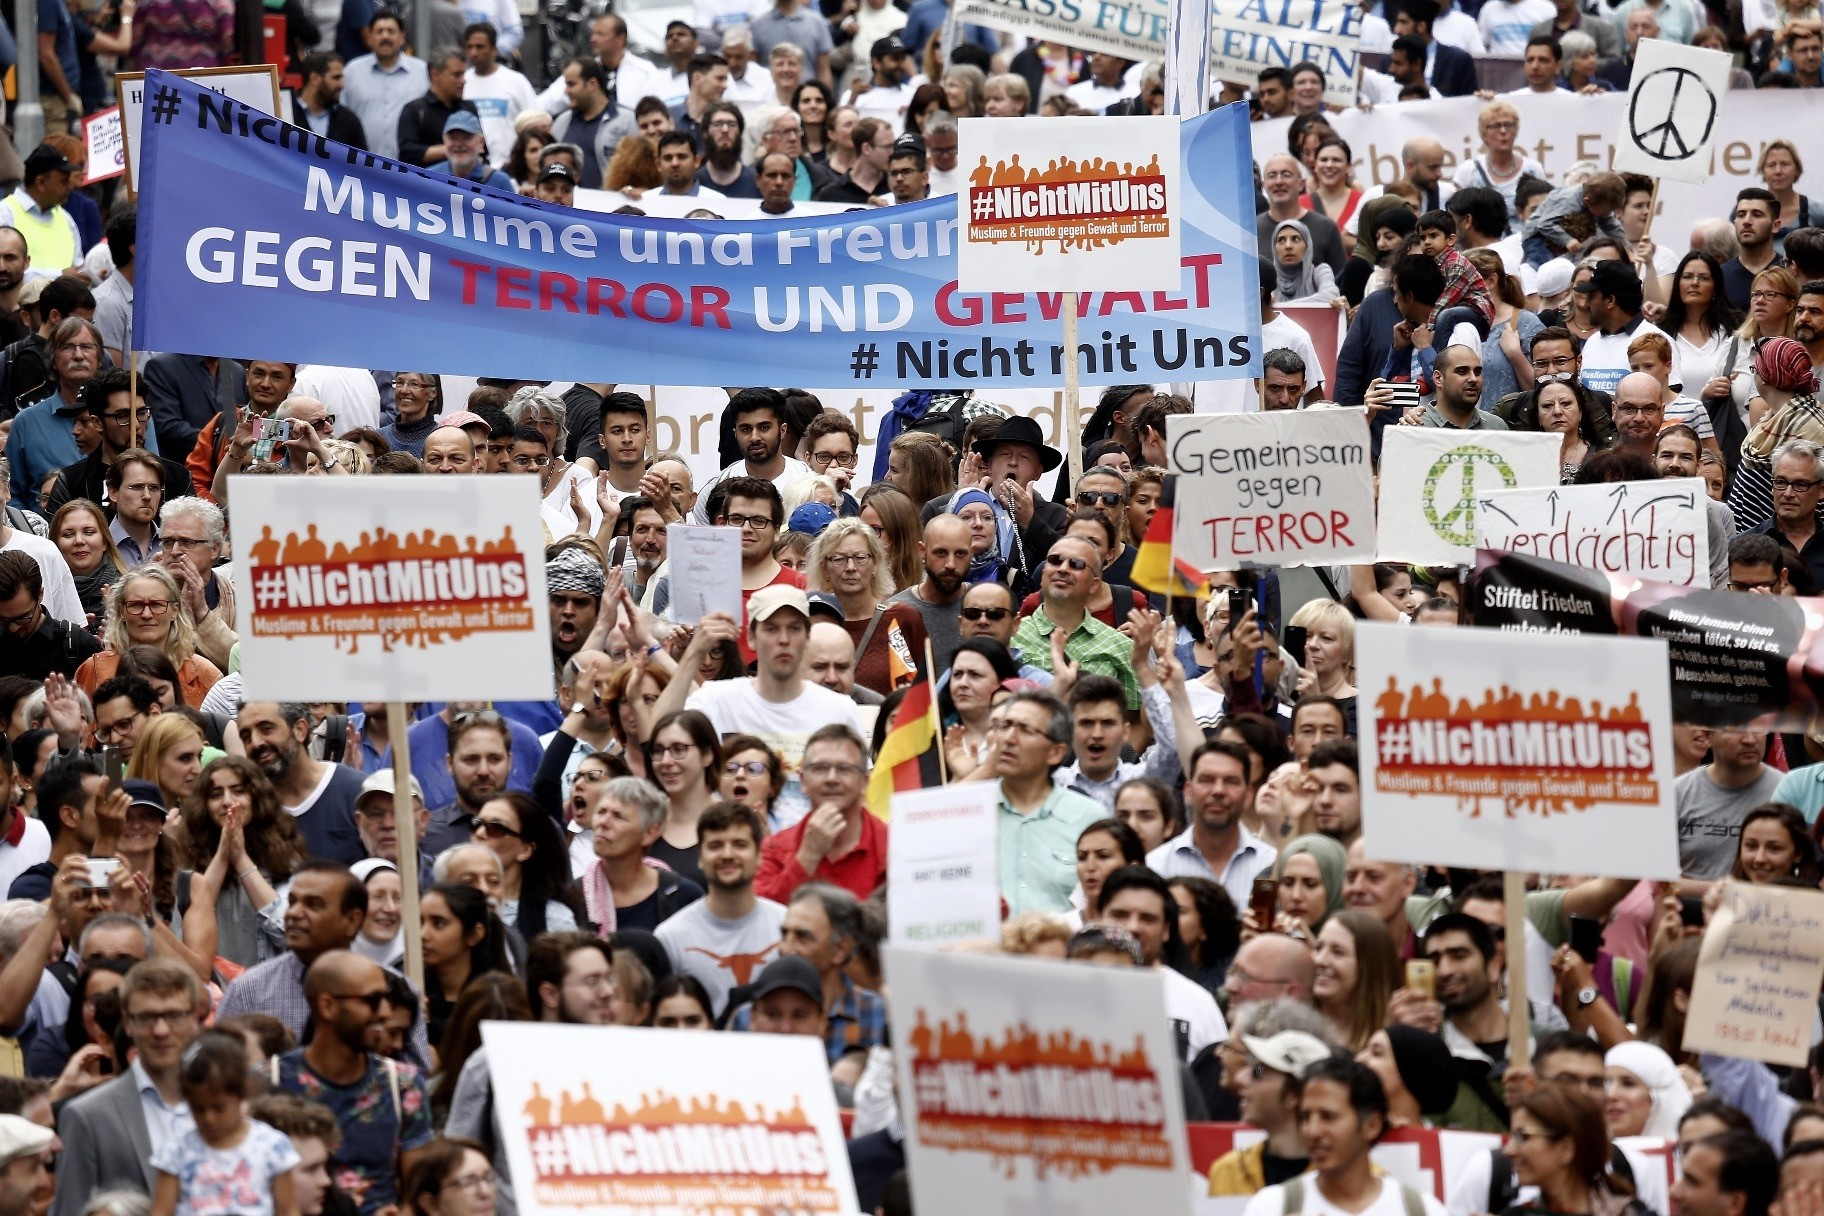 Participants carry a banner reading u201cMuslims and Friends against Terror and Violenceu201d as they take part u201cThe Not With Usu201d rally against the rising anti-Islam sentiment and extremism in Cologne, Germany, June 17.